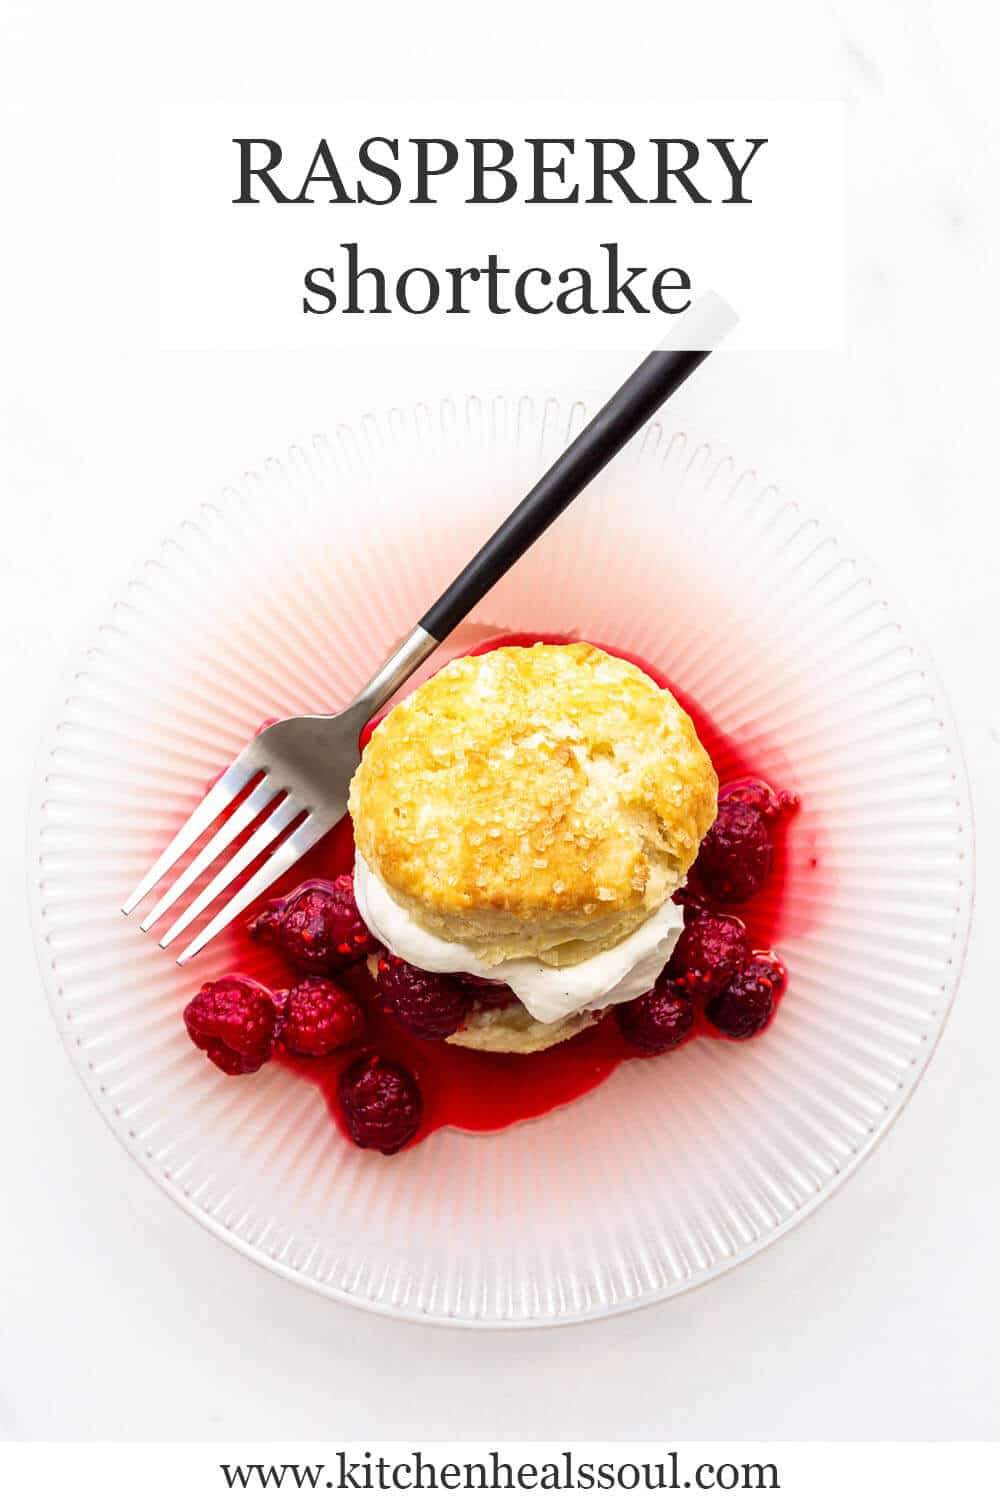 A raspberry shortcake on a pink plate with macerated raspberries and whipped cream served on a golden brown biscuit